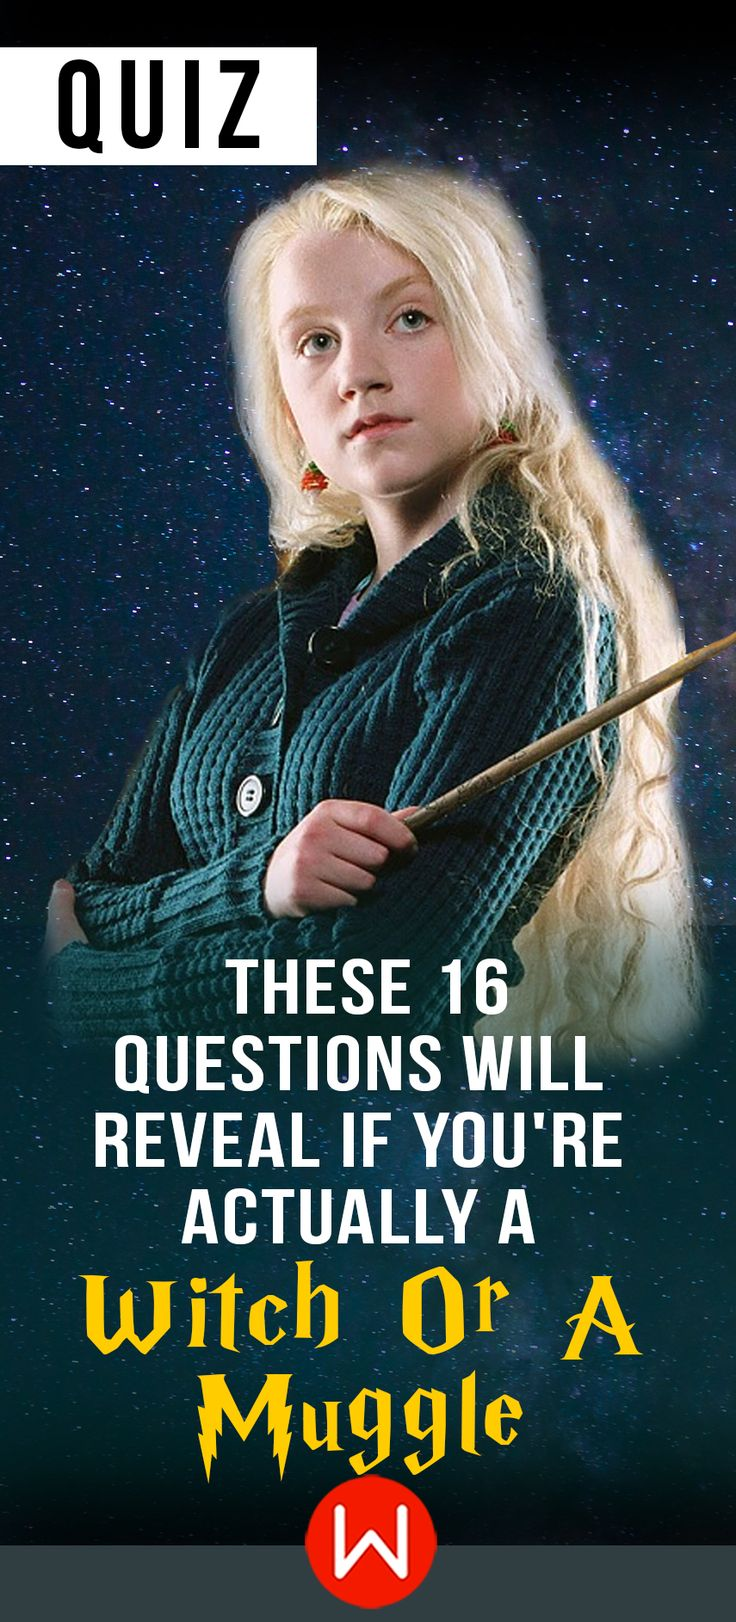 Are you a wizard or just extremely gifted? Harry Potter Quiz. HP Quiz. HP personality quiz. Luna Lovegood.  Are you a Muggle or a Witch? Let's see...